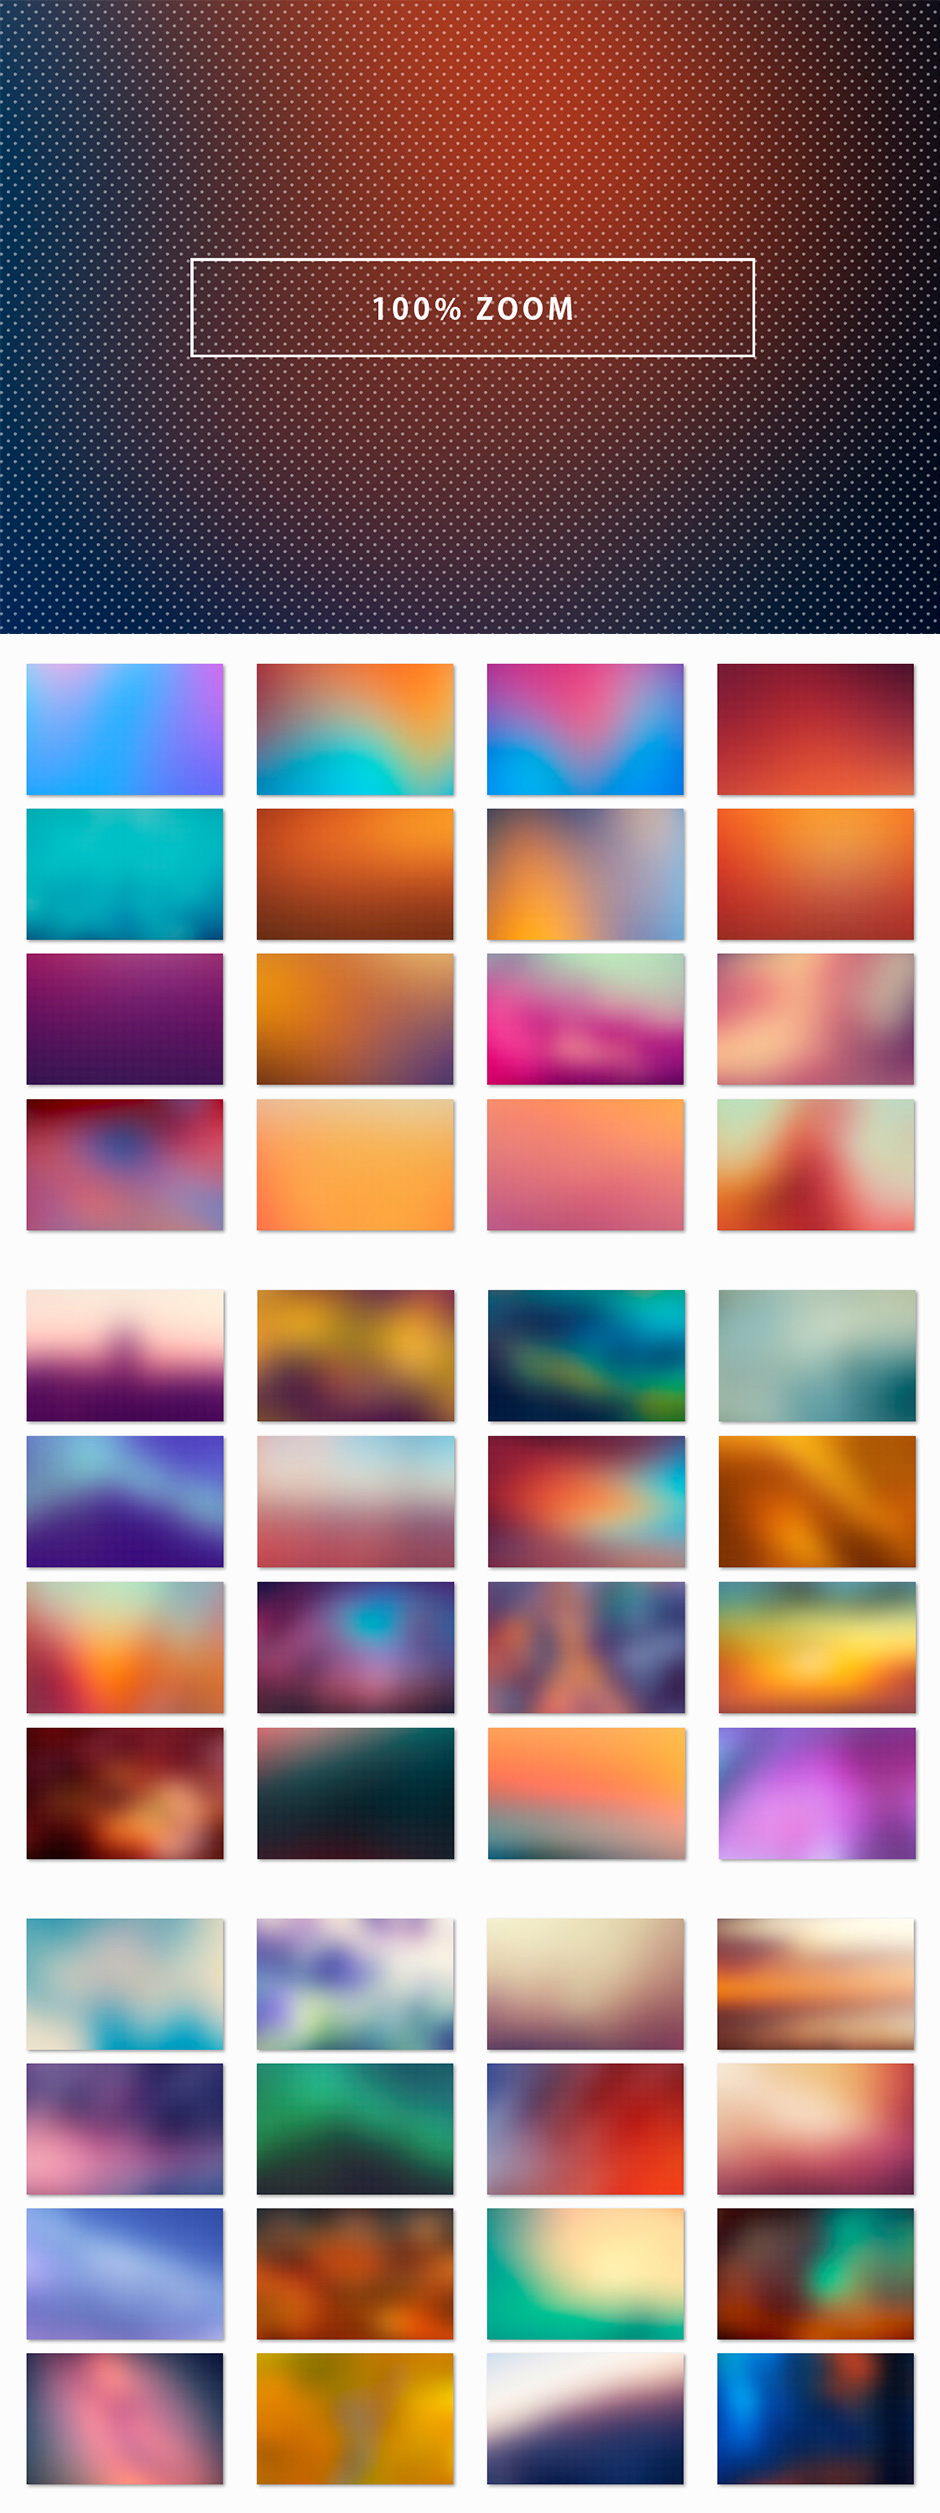 50 Dotted Blur Backgrounds